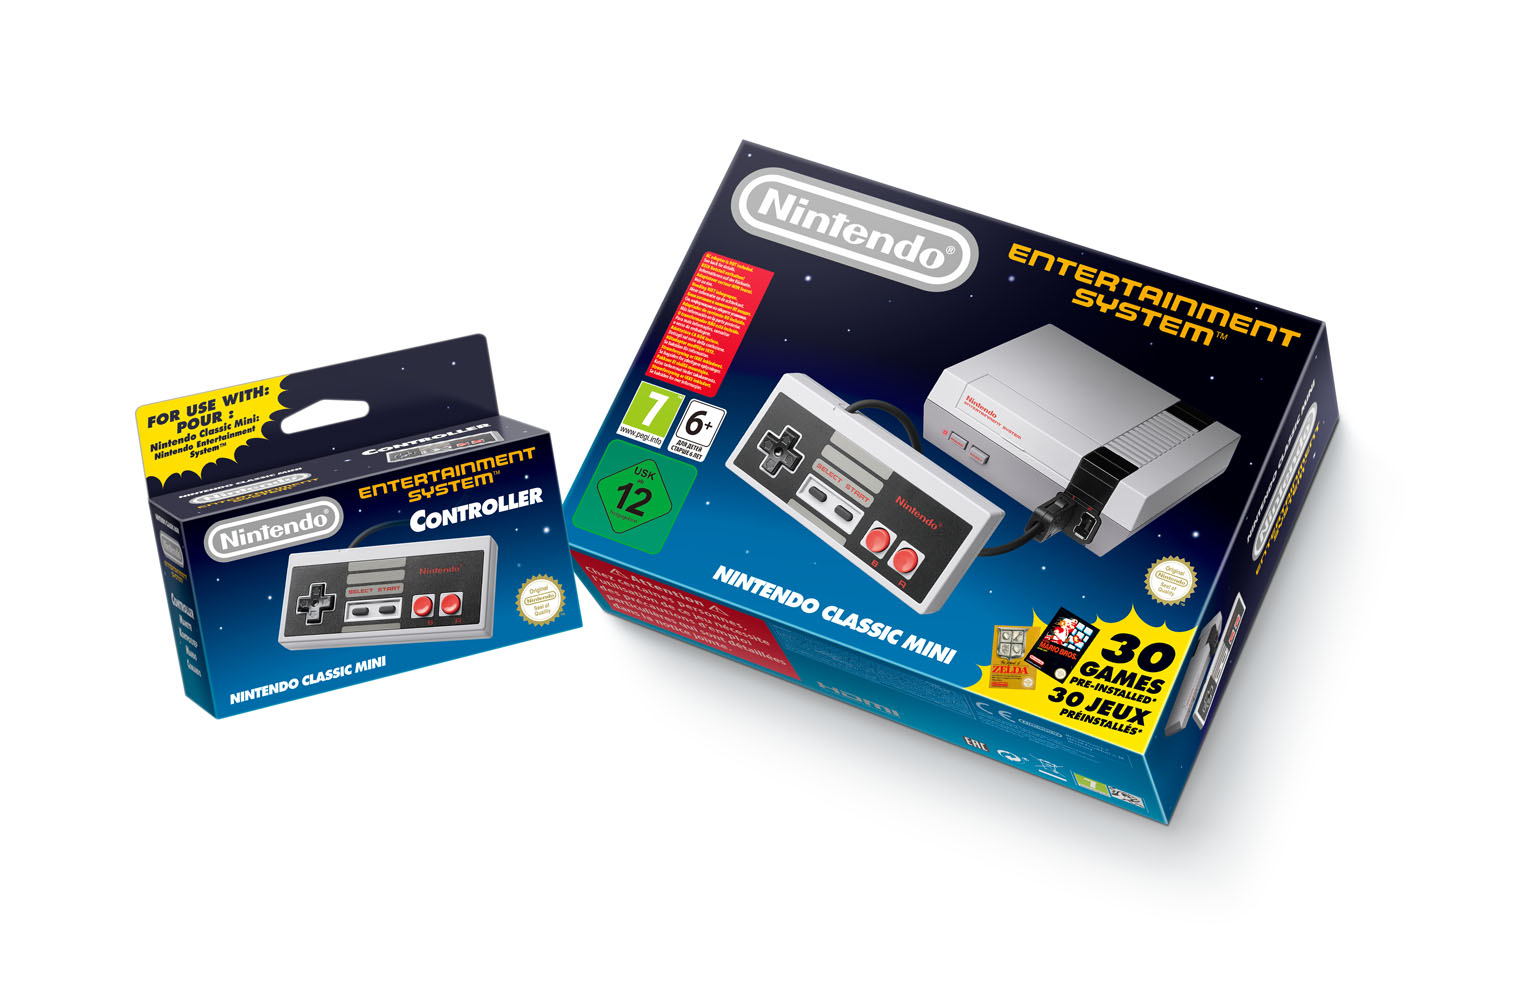 Classic Mini Nintendo Entertainment System